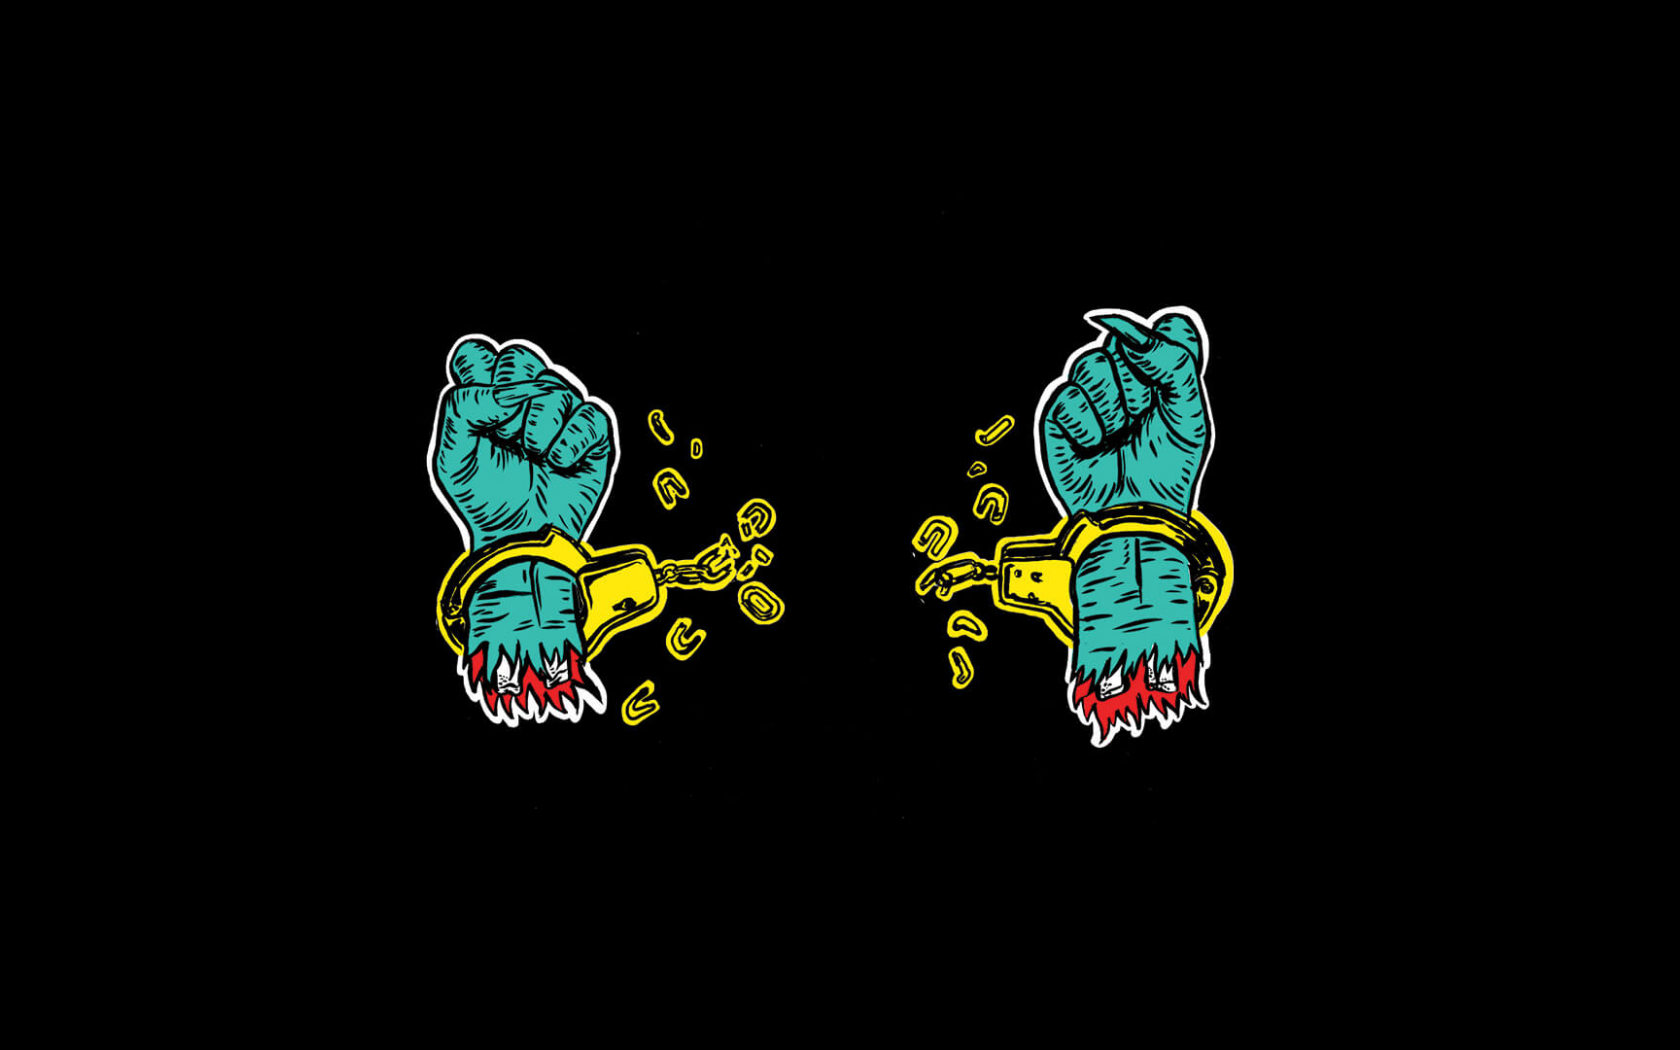 Free Download Rtj Desktop And Mobile Wallpaper Downloads Run The